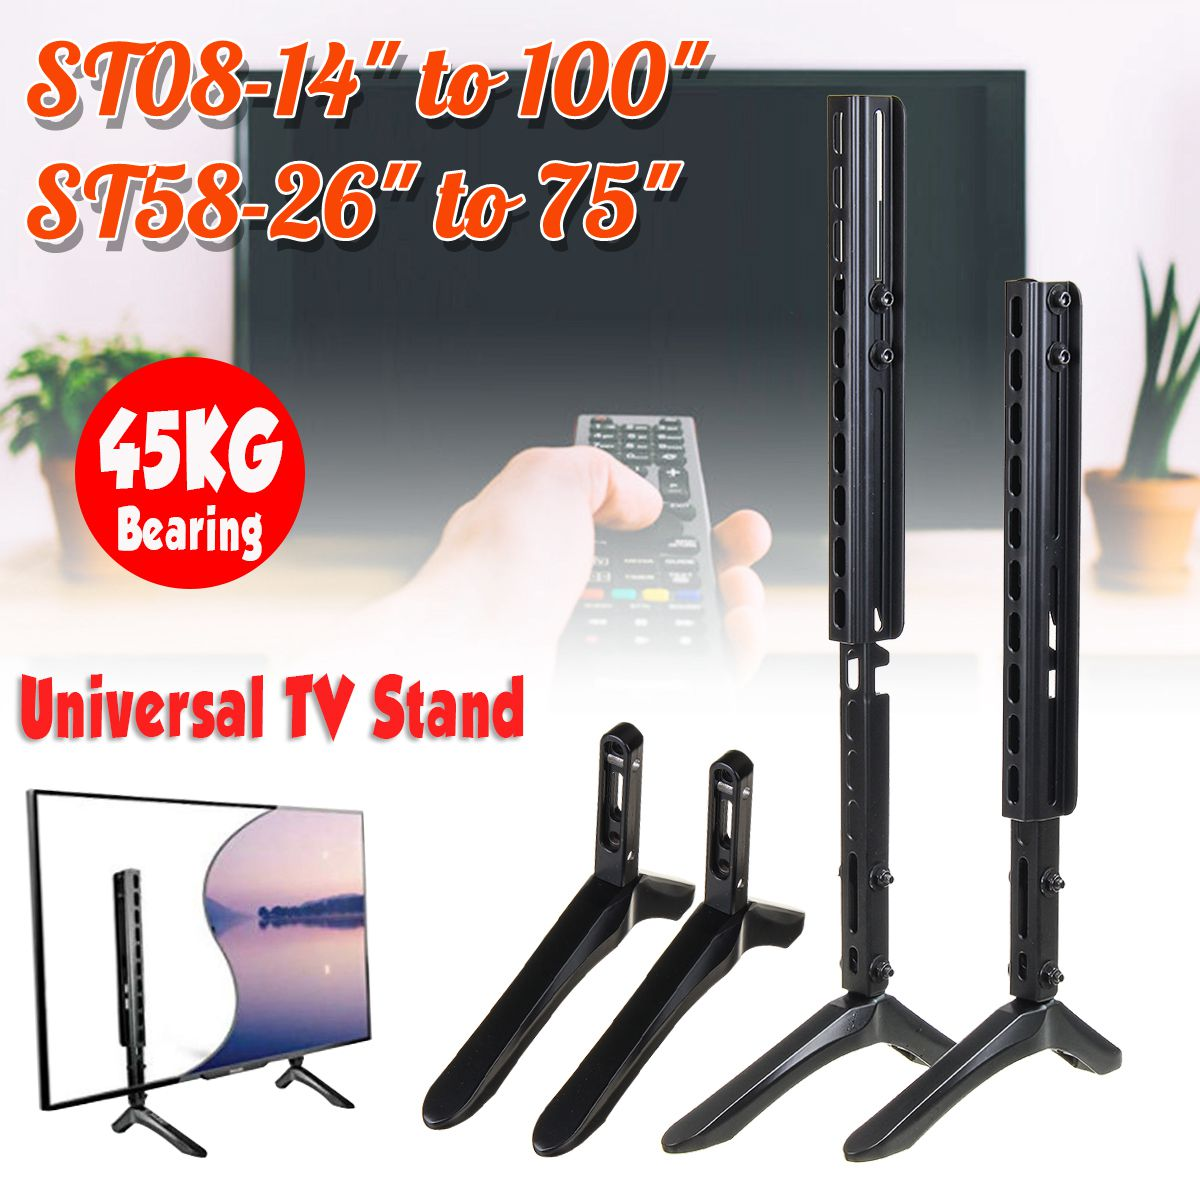 14-100 inch Universal Table TV Stand Base LCD Flat Screen Table Top Pedestal Mount Load Up to 45KG Iron Easy Installaation14-100 inch Universal Table TV Stand Base LCD Flat Screen Table Top Pedestal Mount Load Up to 45KG Iron Easy Installaation